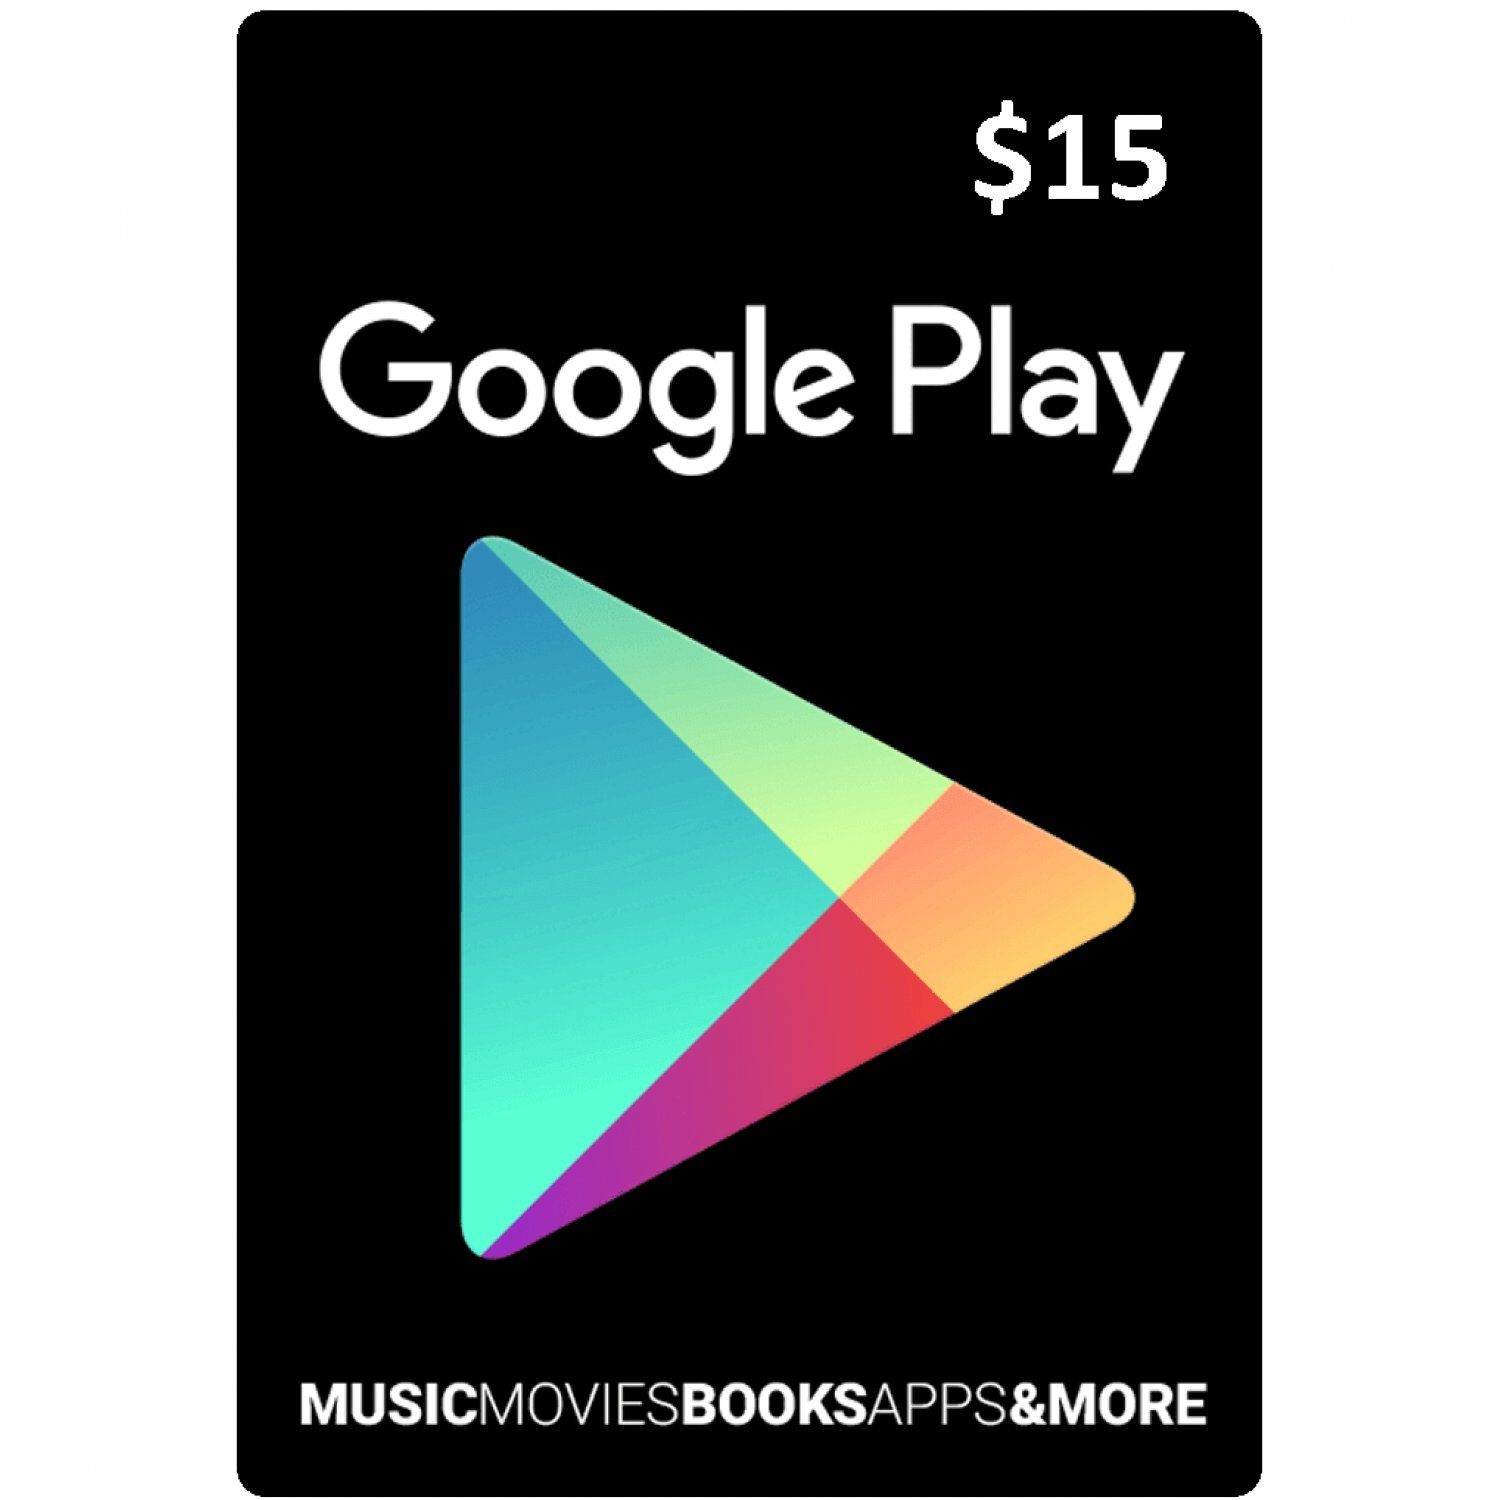 google play card cad15 for canada accounts only digital digital